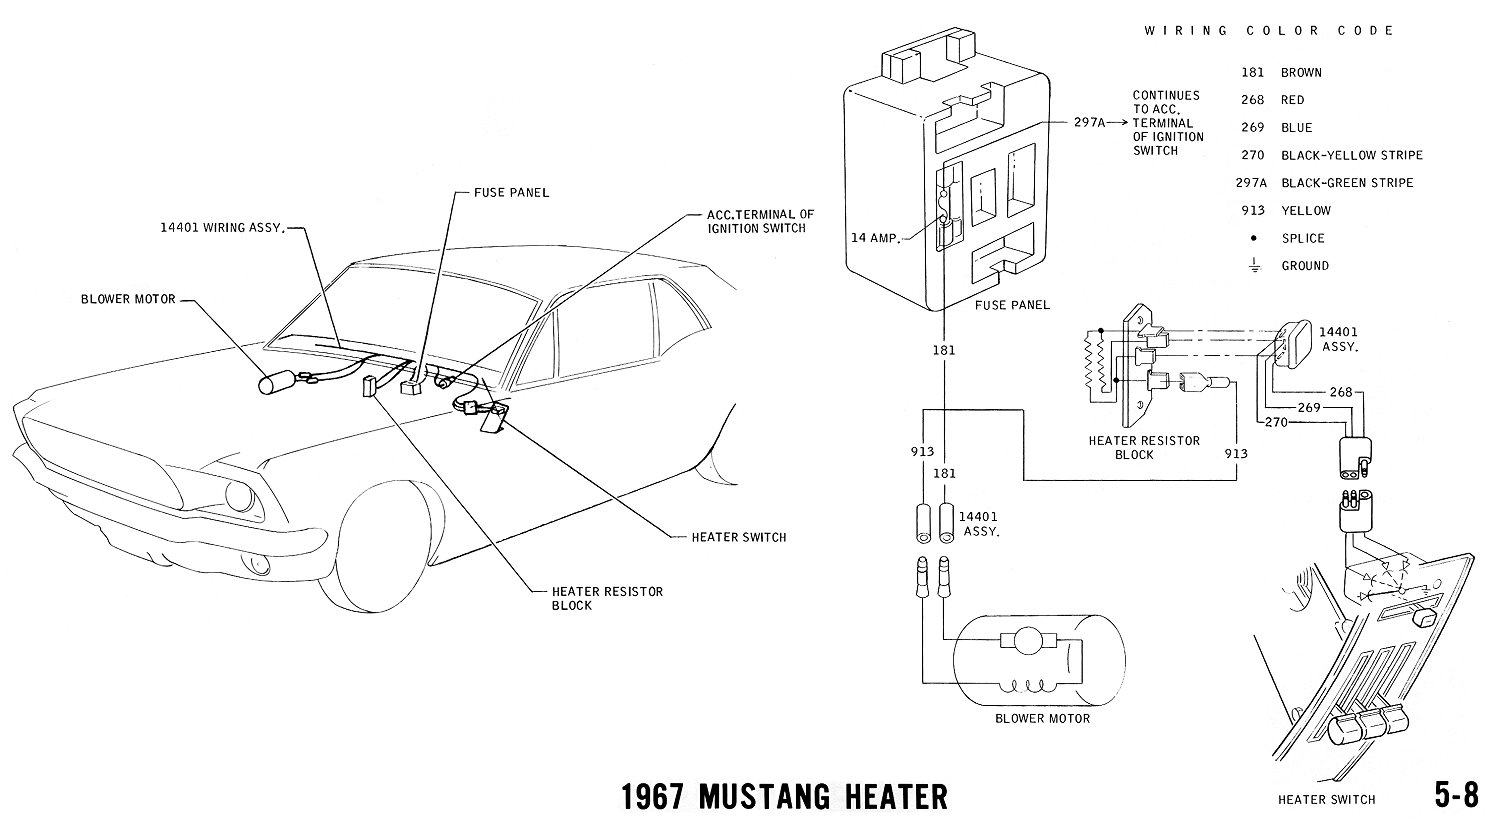 Heater on F Fuse Box Diagram Vehicle Wiring Diagrams Ford Interior